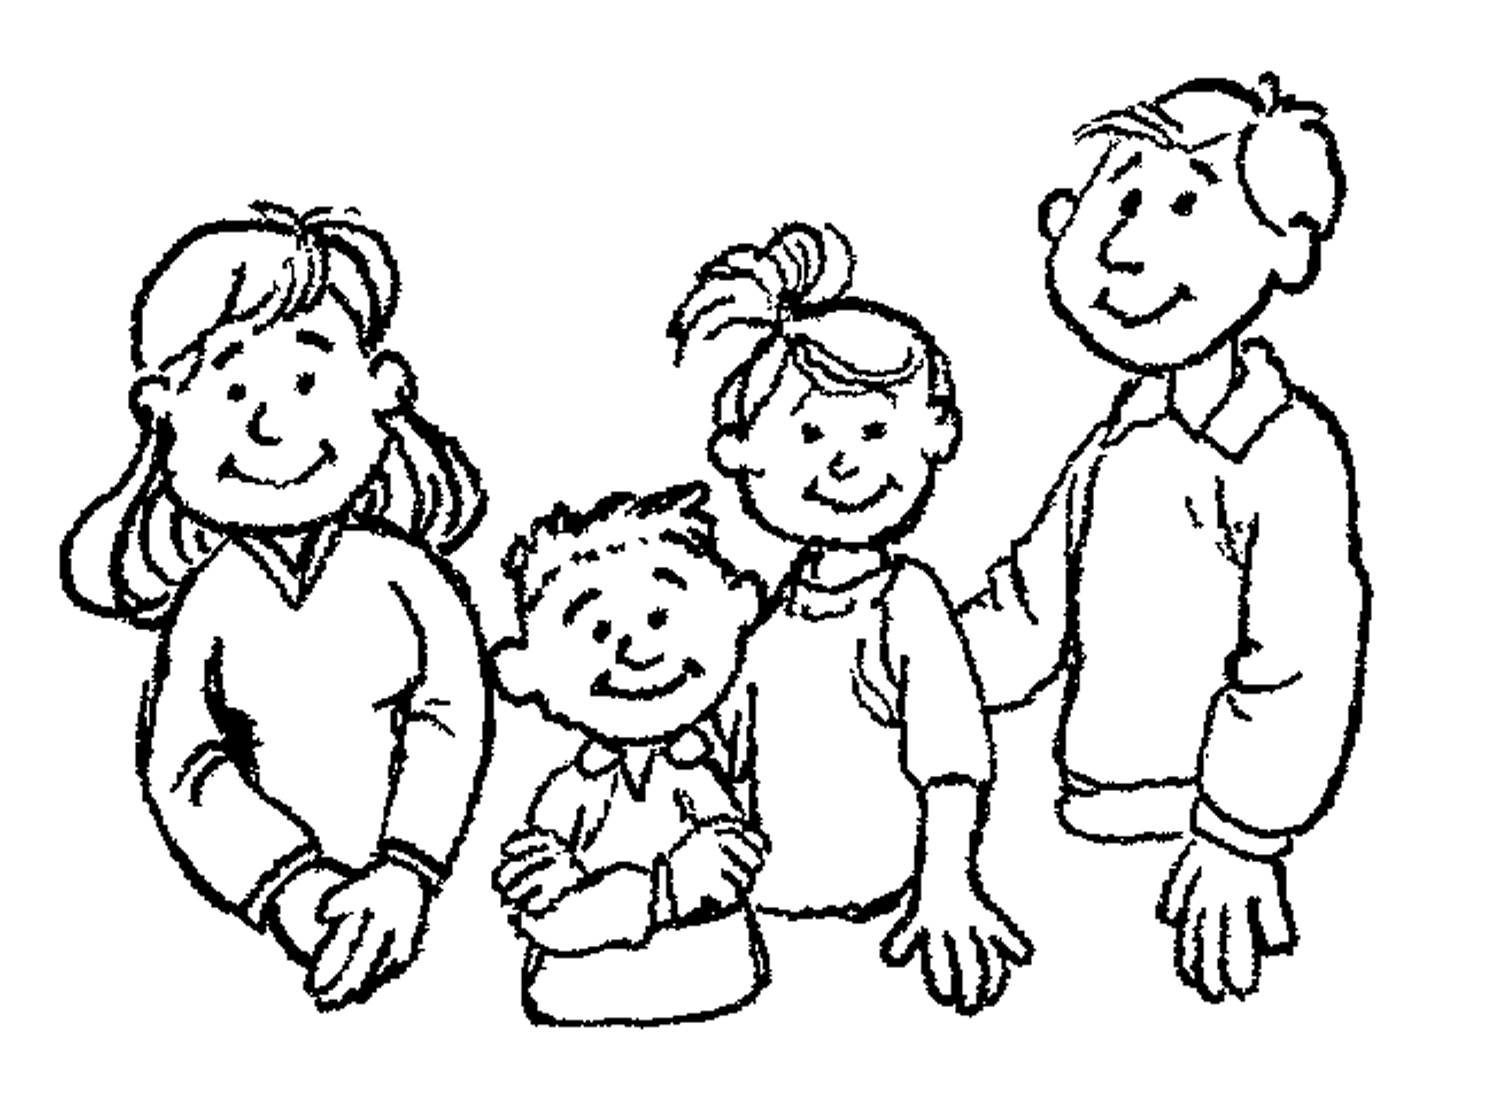 Lds Clipart Family - Cliparts.co